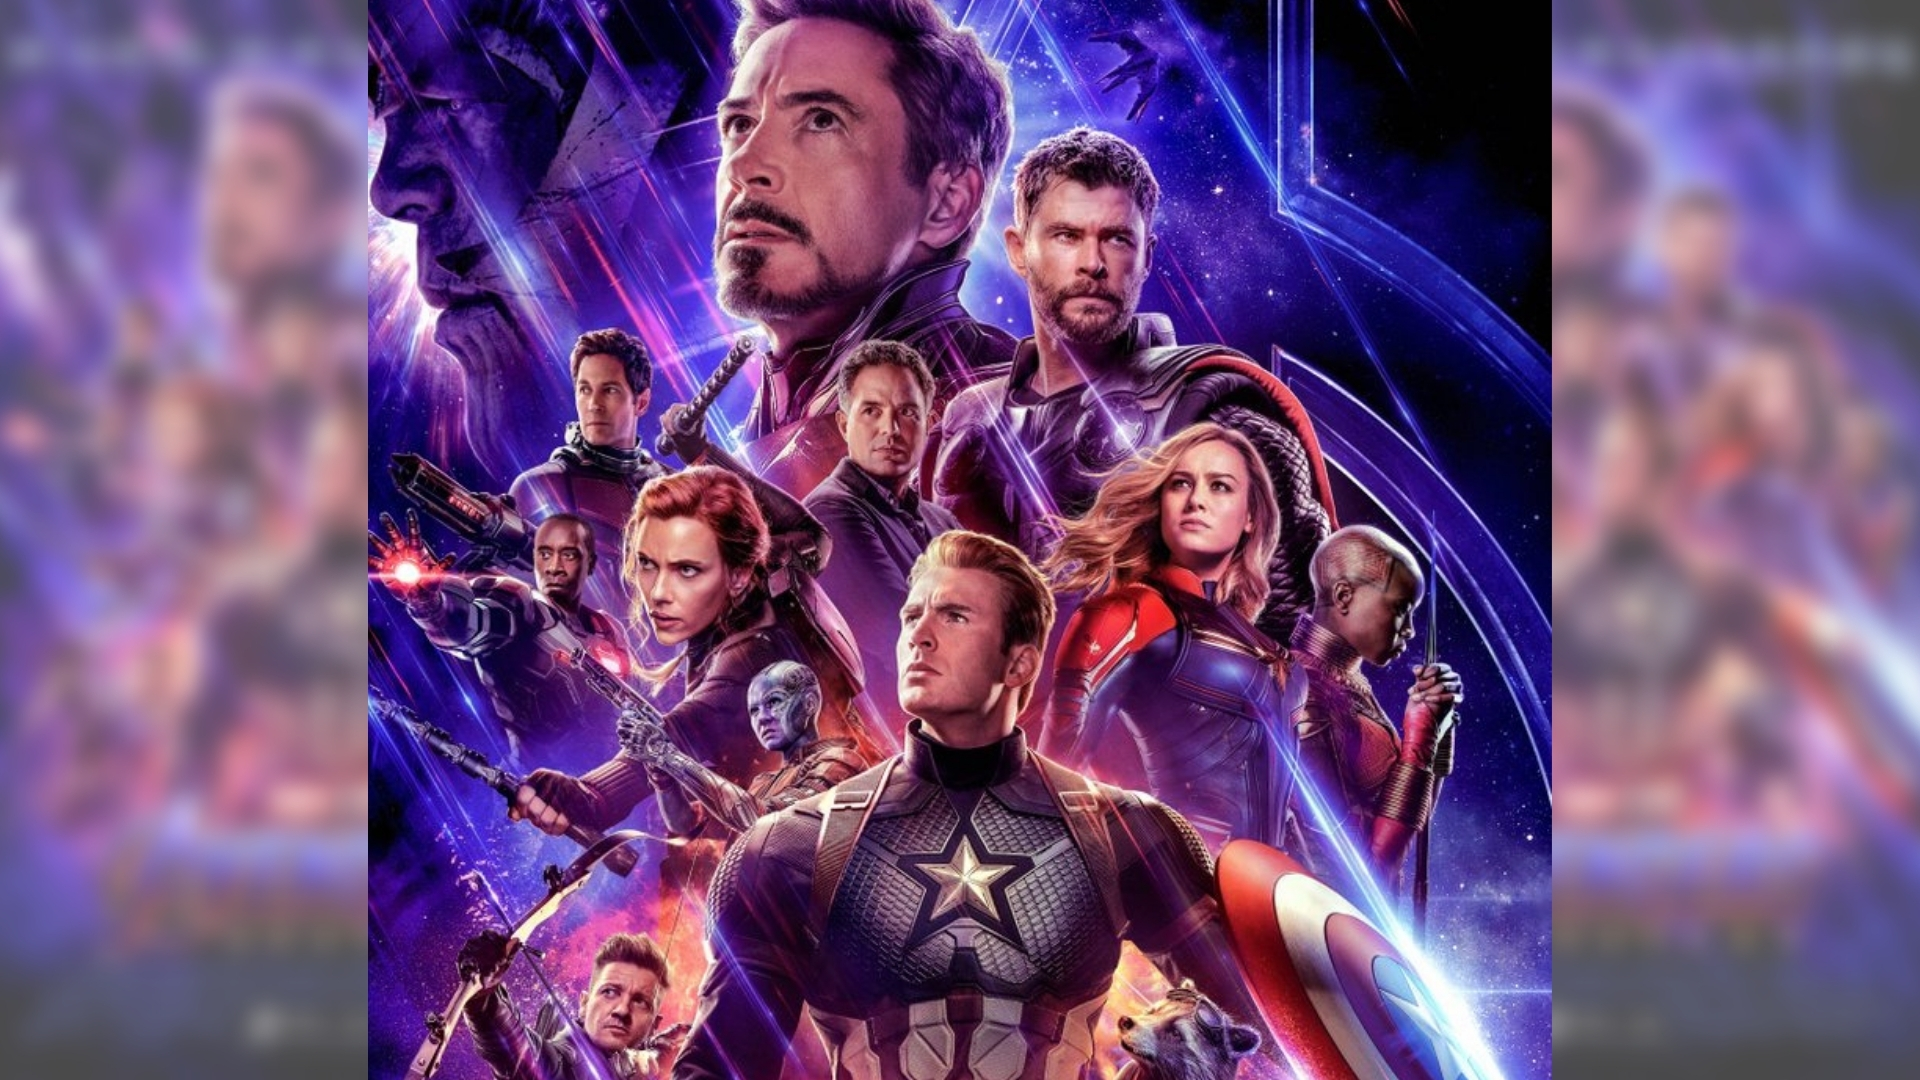 'Avengers: Endgame' to Re-Release in India This Weekend